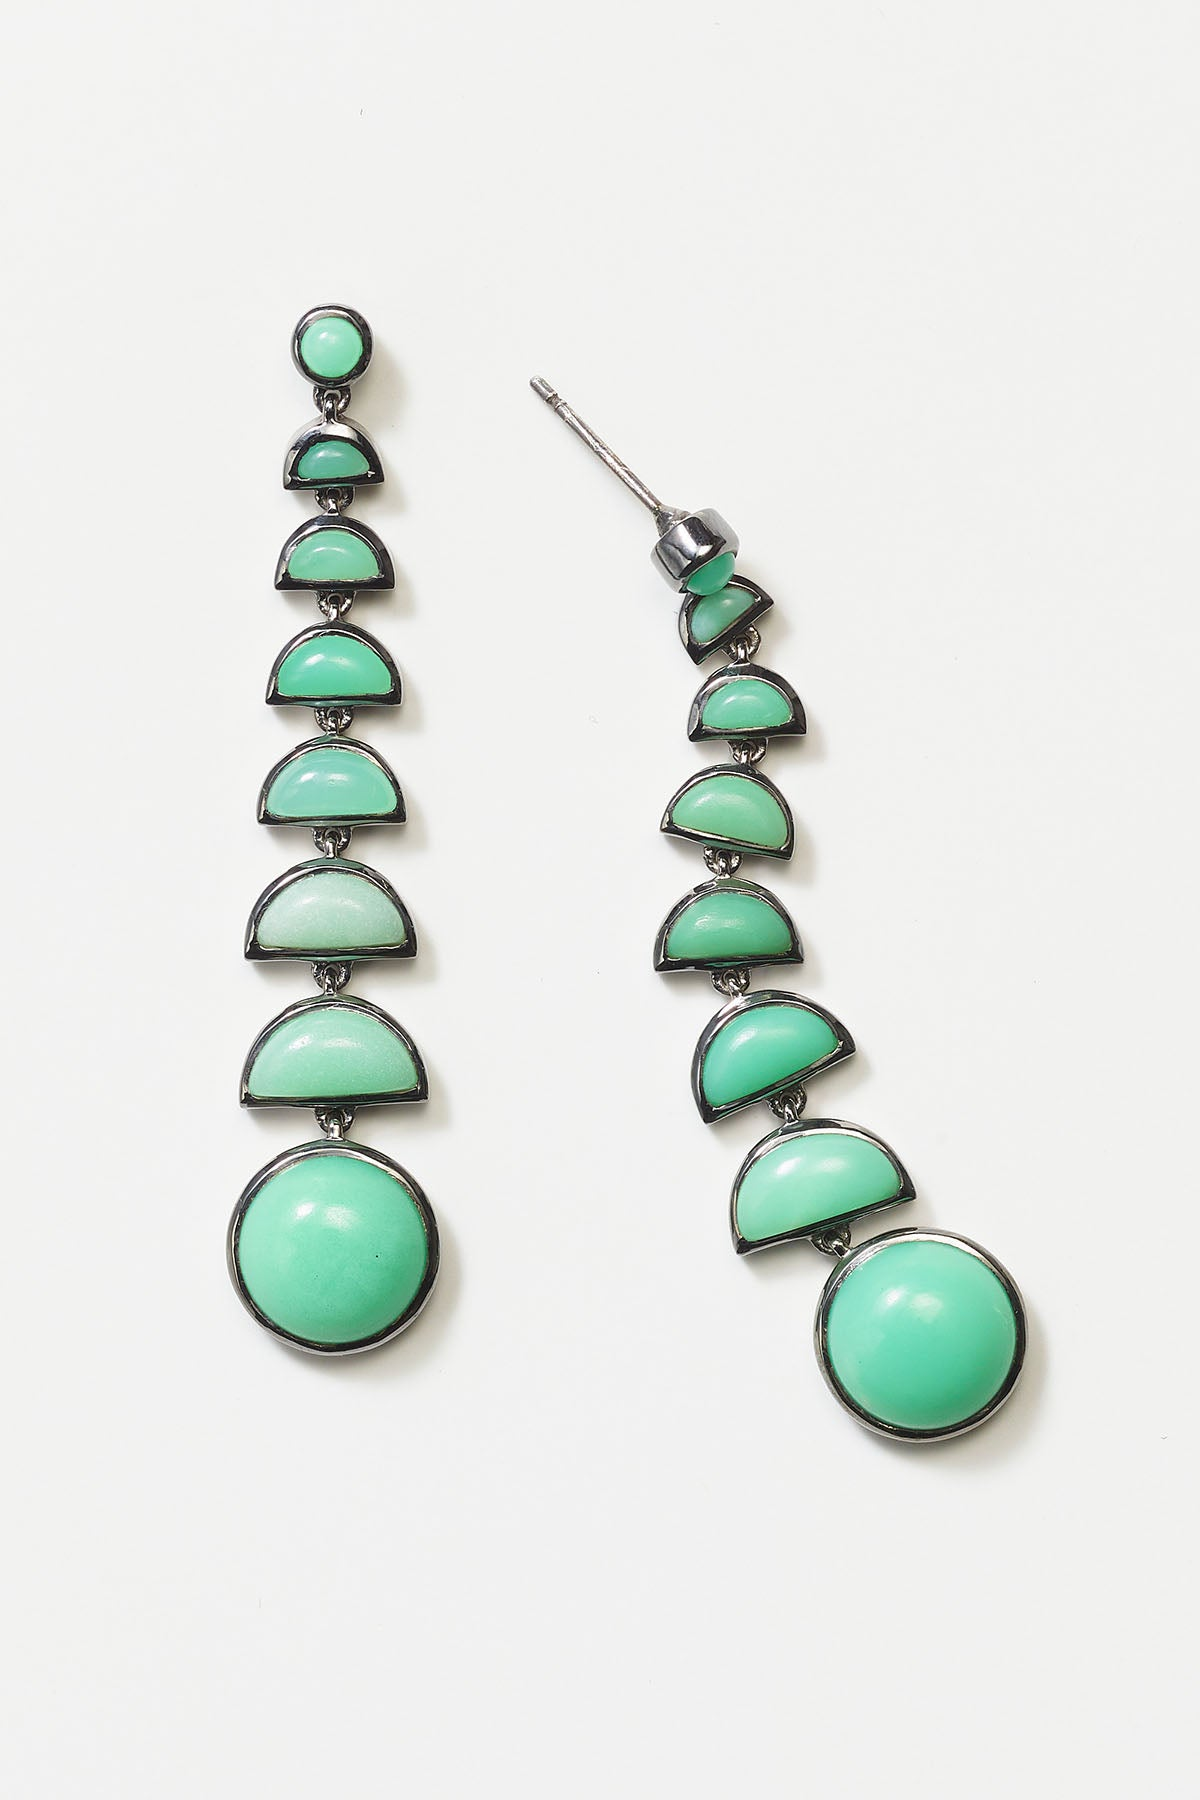 Nakard by Nak Armstrong - ballbearing earrings, chrysoprase